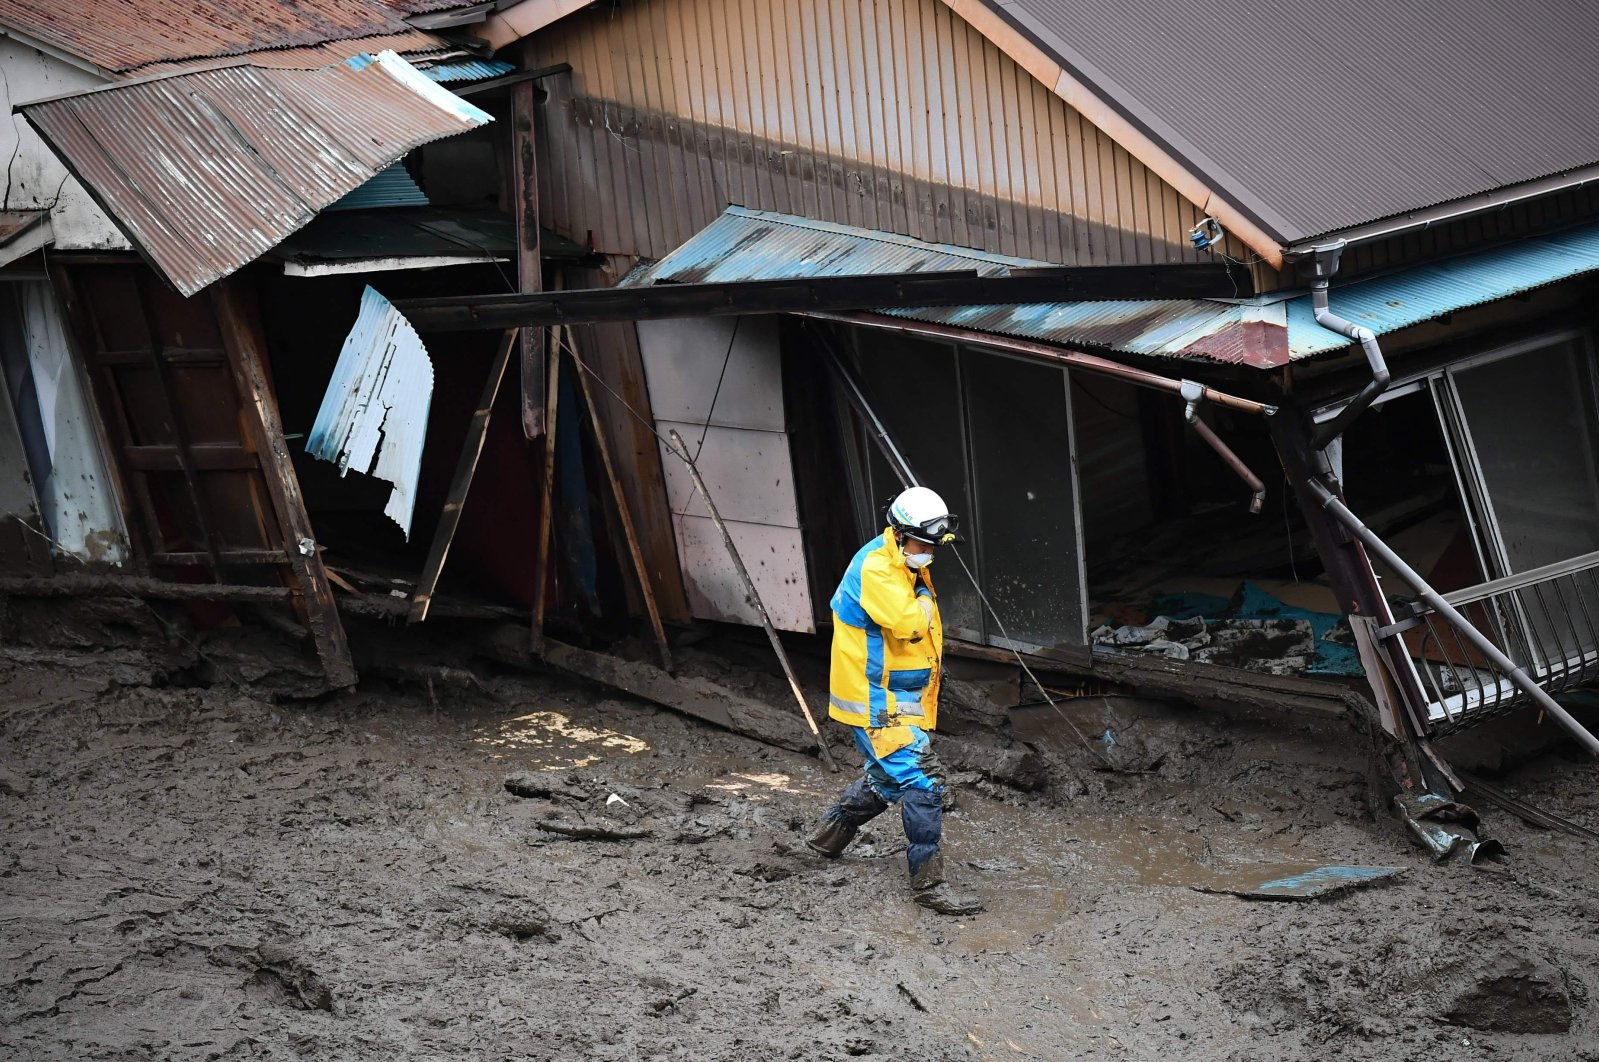 A police officer walks through the mud past a damaged building at the scene of a landslide in Atami, Shizuoka Prefecture, Japan, July 5, 2021. (AP Photo)